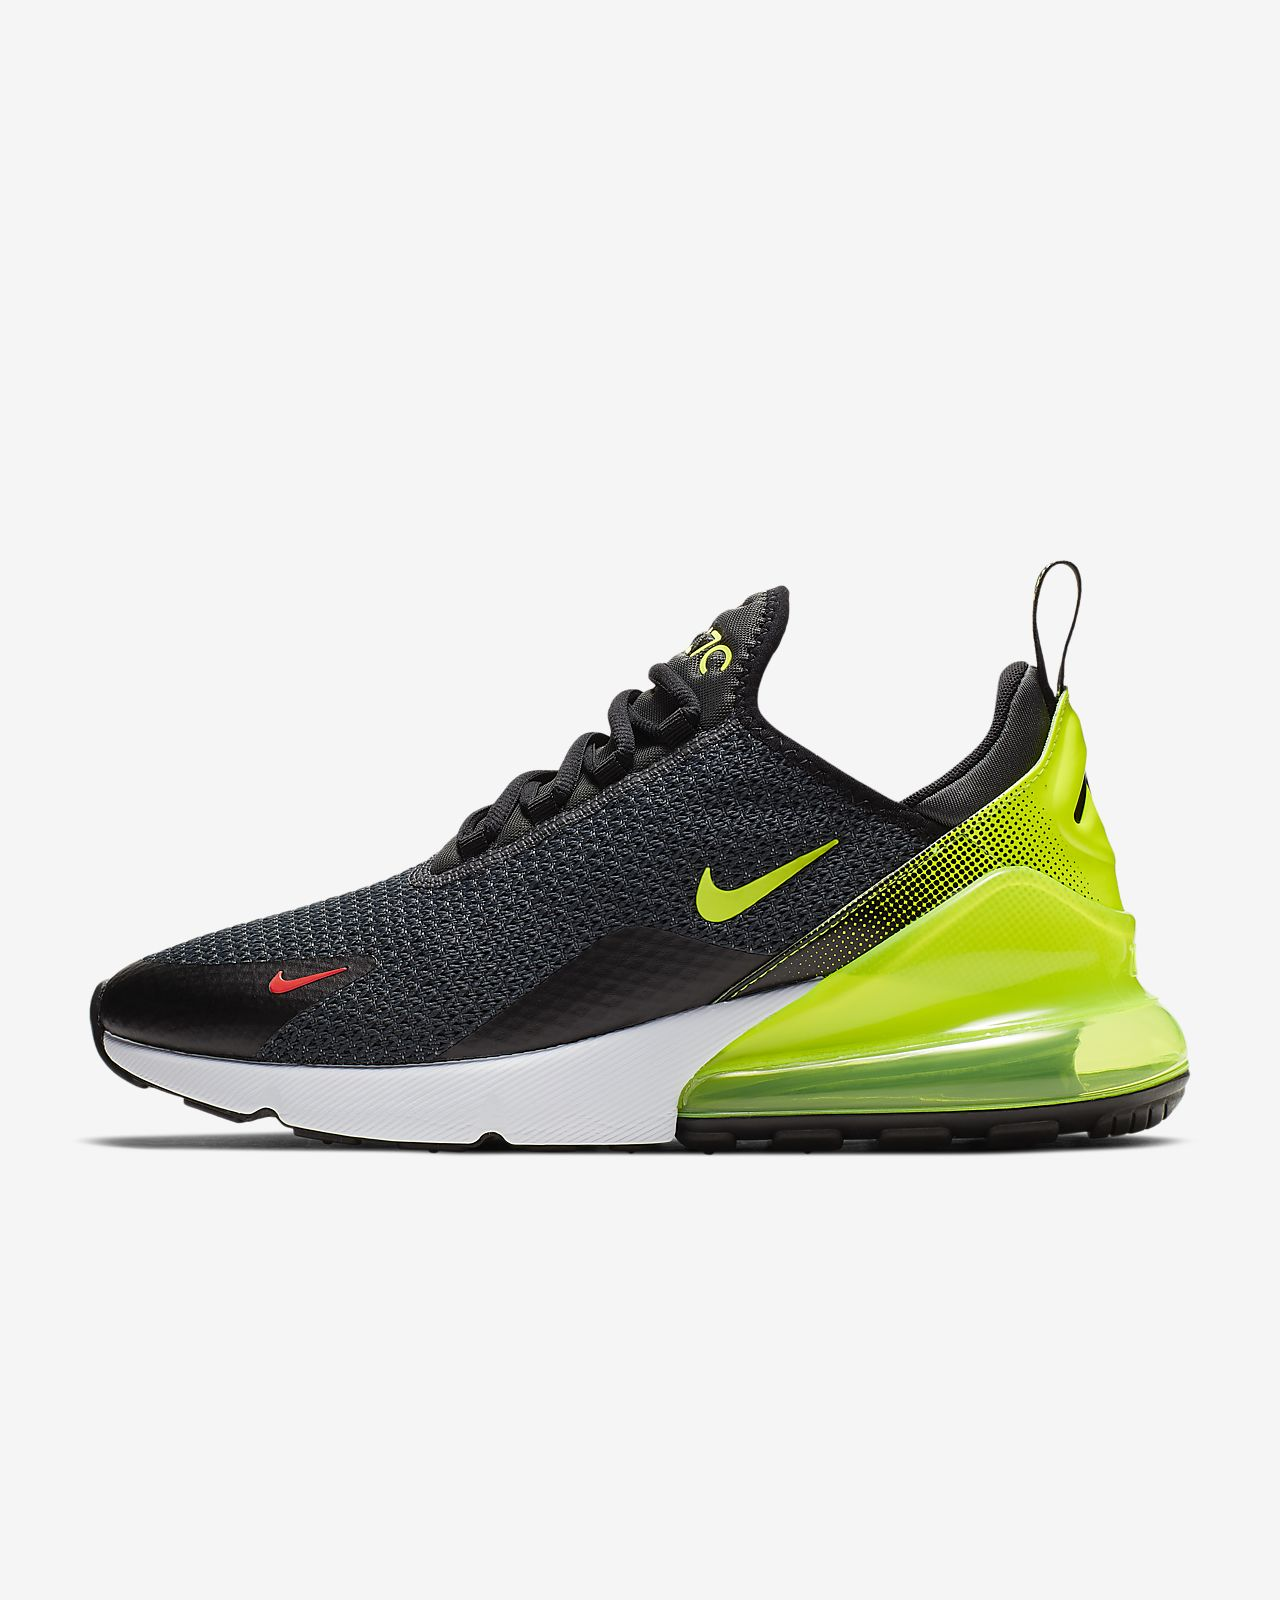 60026adc86d Nike Air Max 270 SE Men s Shoe. Nike.com